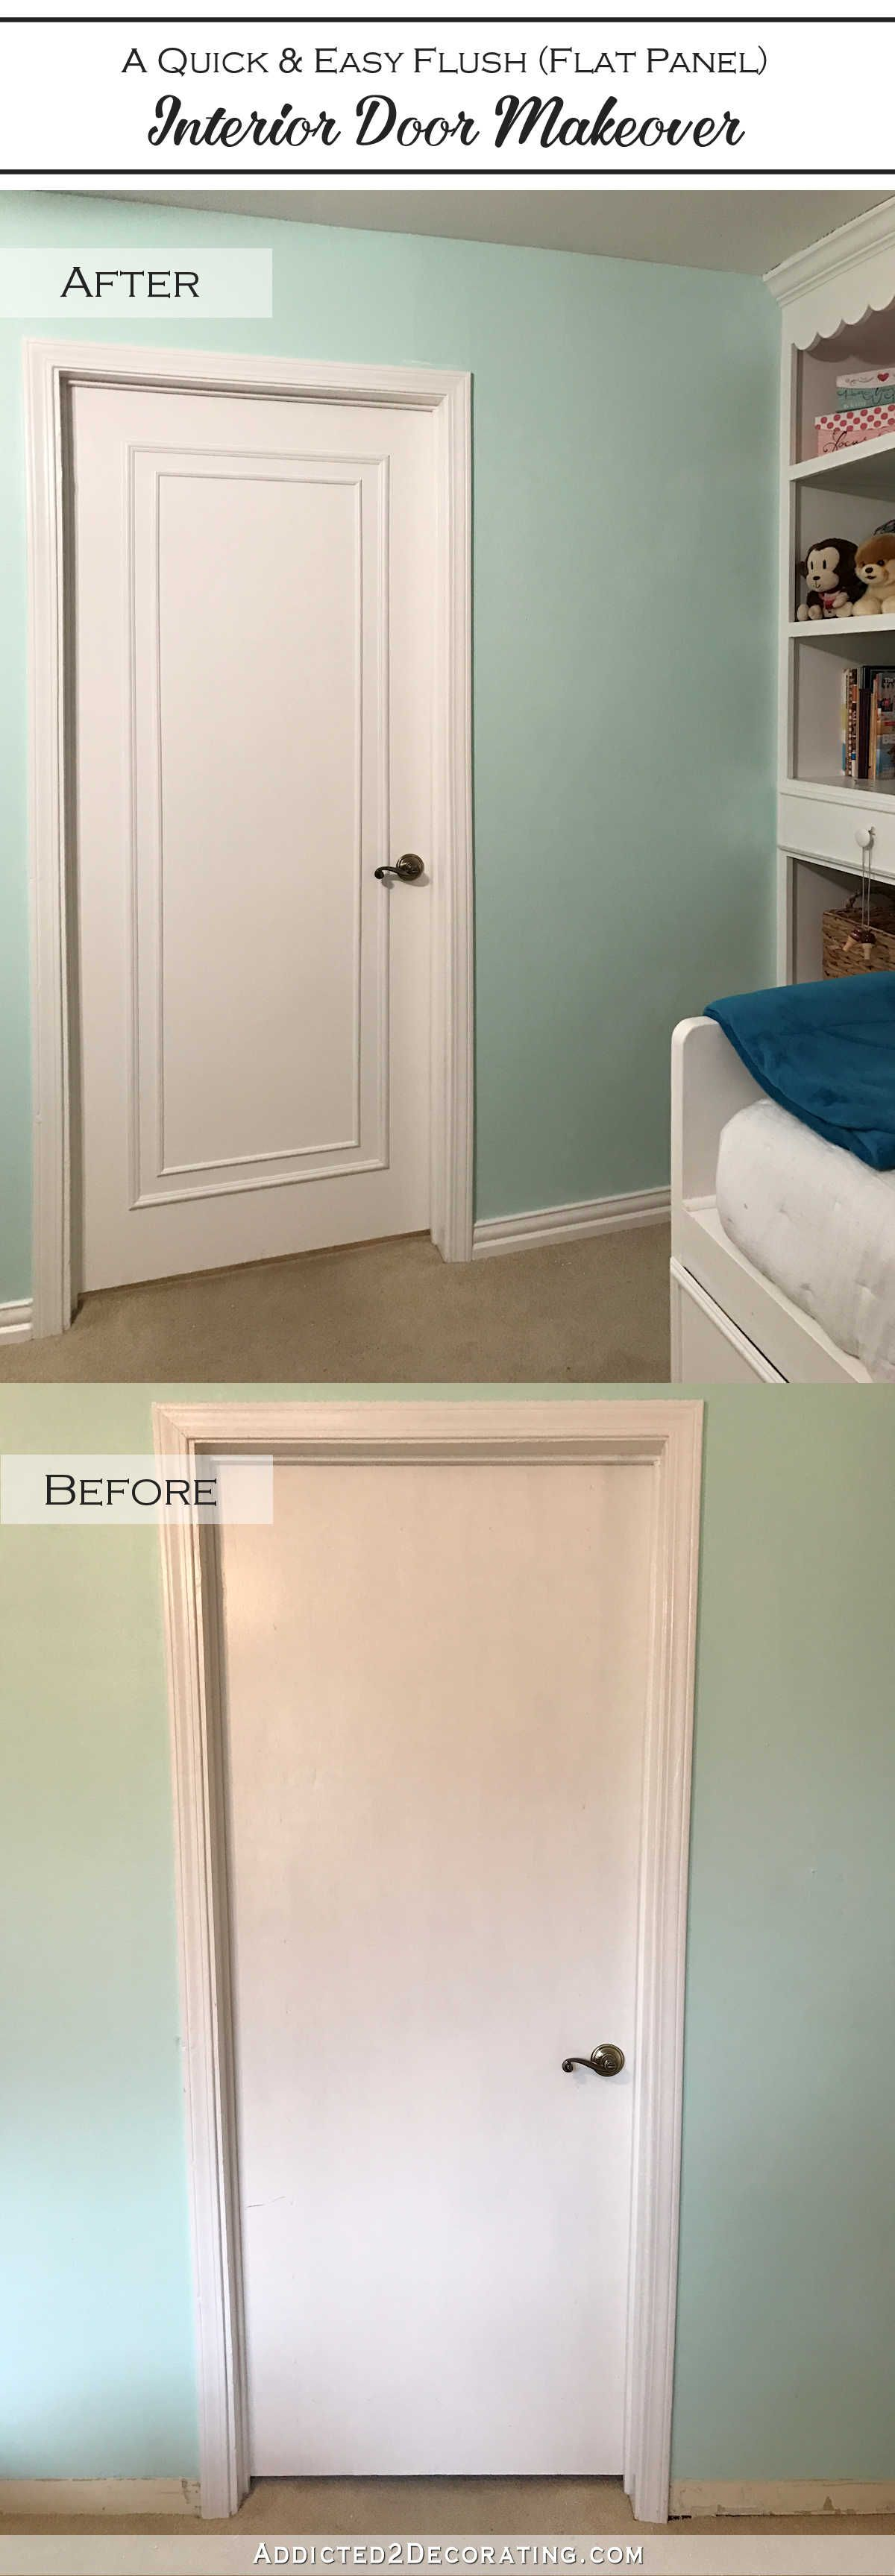 An easy  inexpensive way to update flush flat panel interior doors with molding also best renovation images in rh pinterest